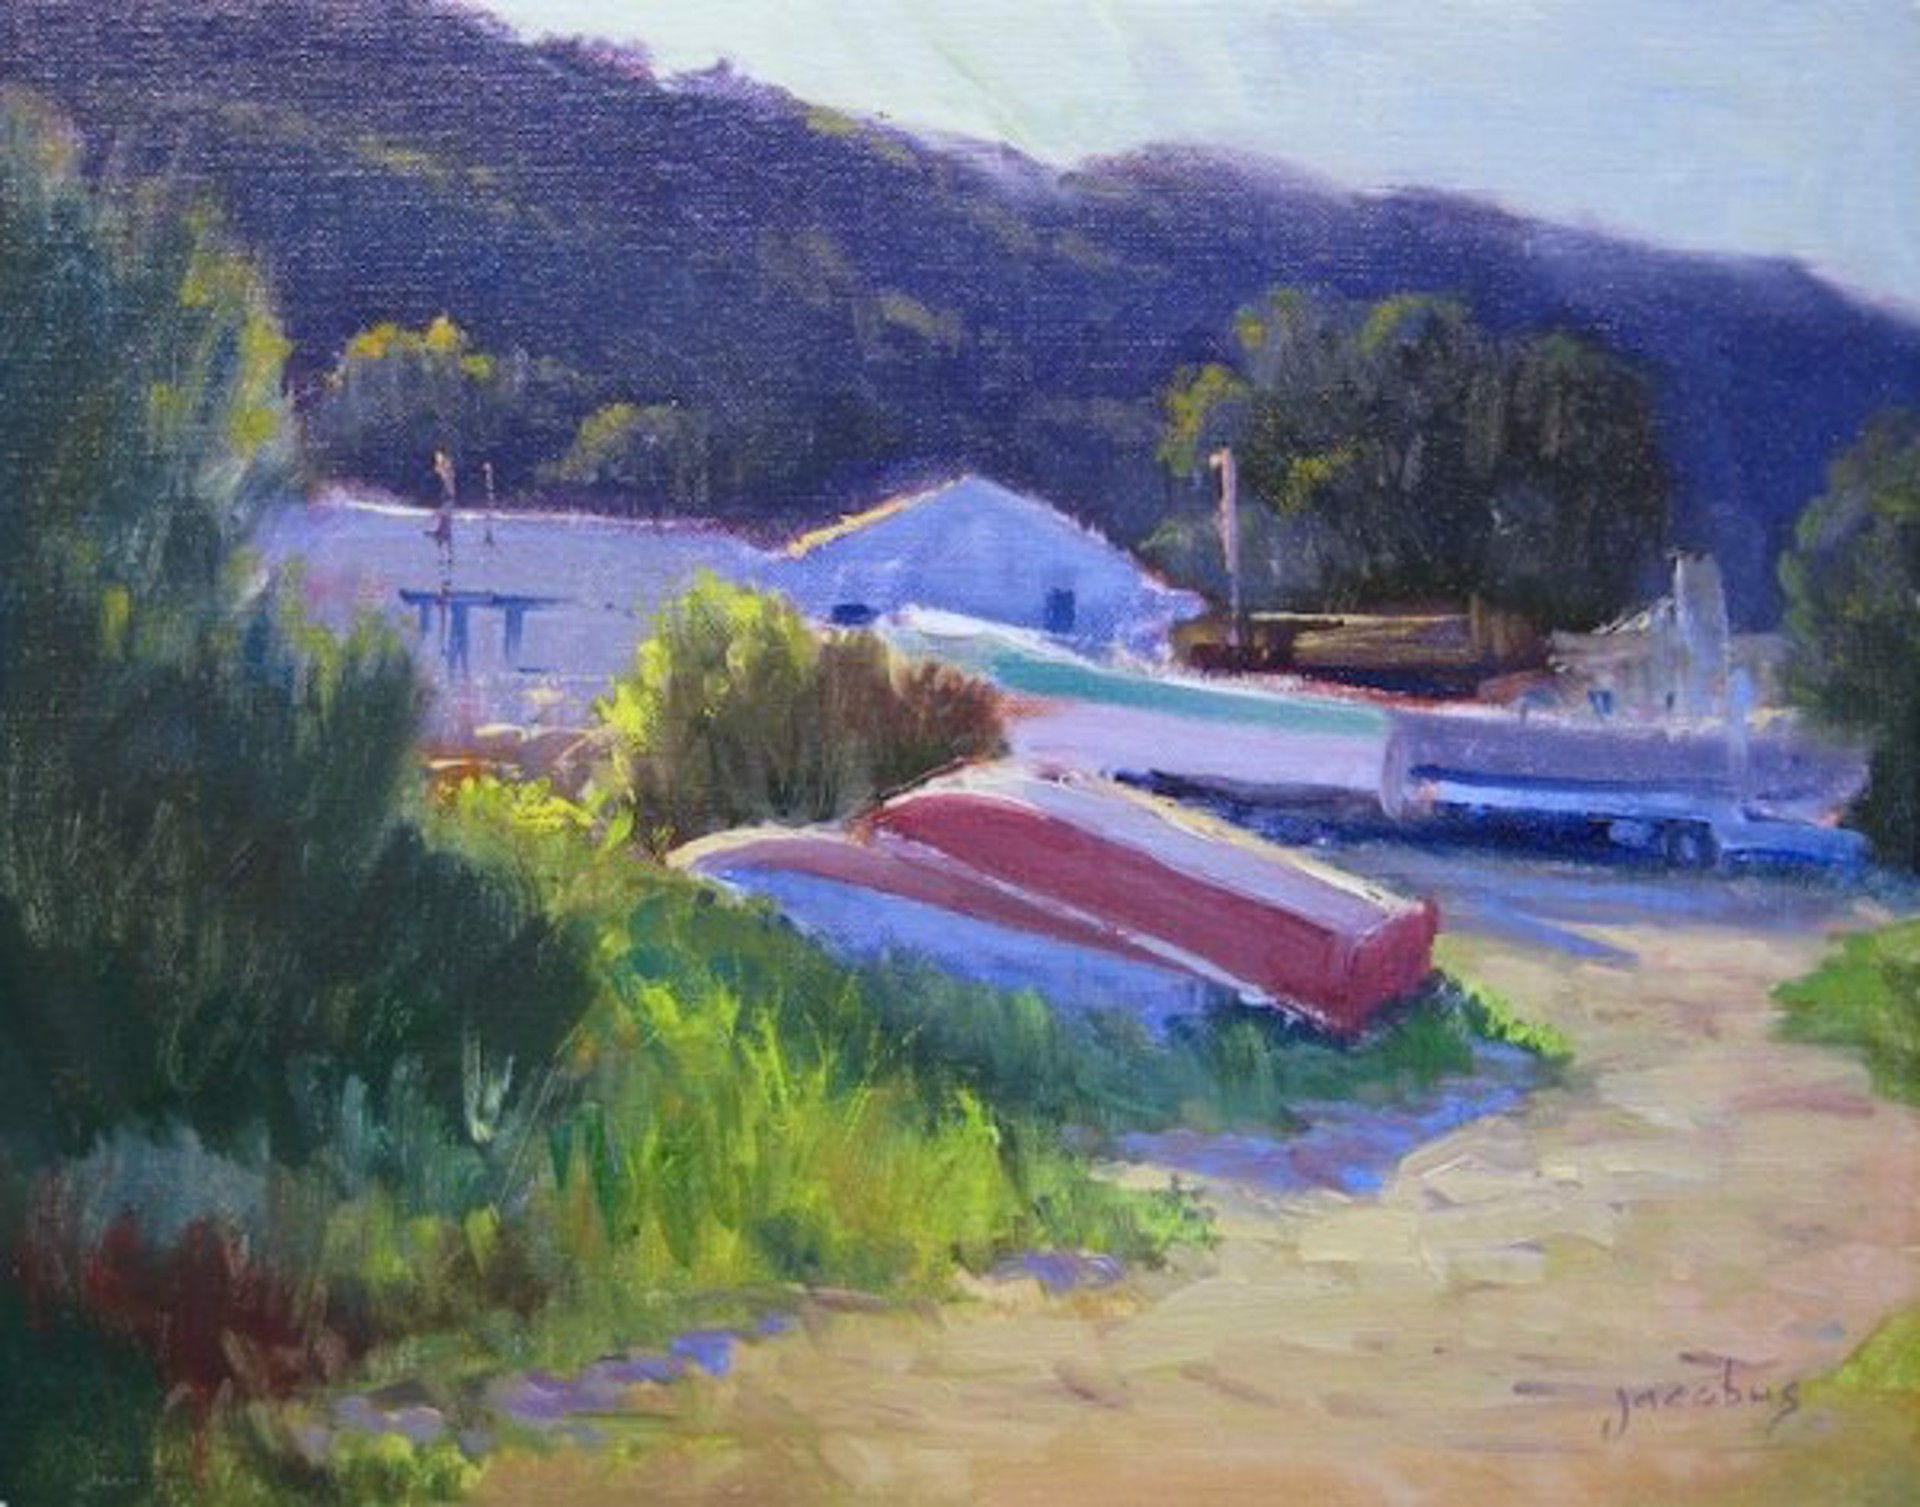 Boat Yard, Tomales Bay by Jacobus Baas